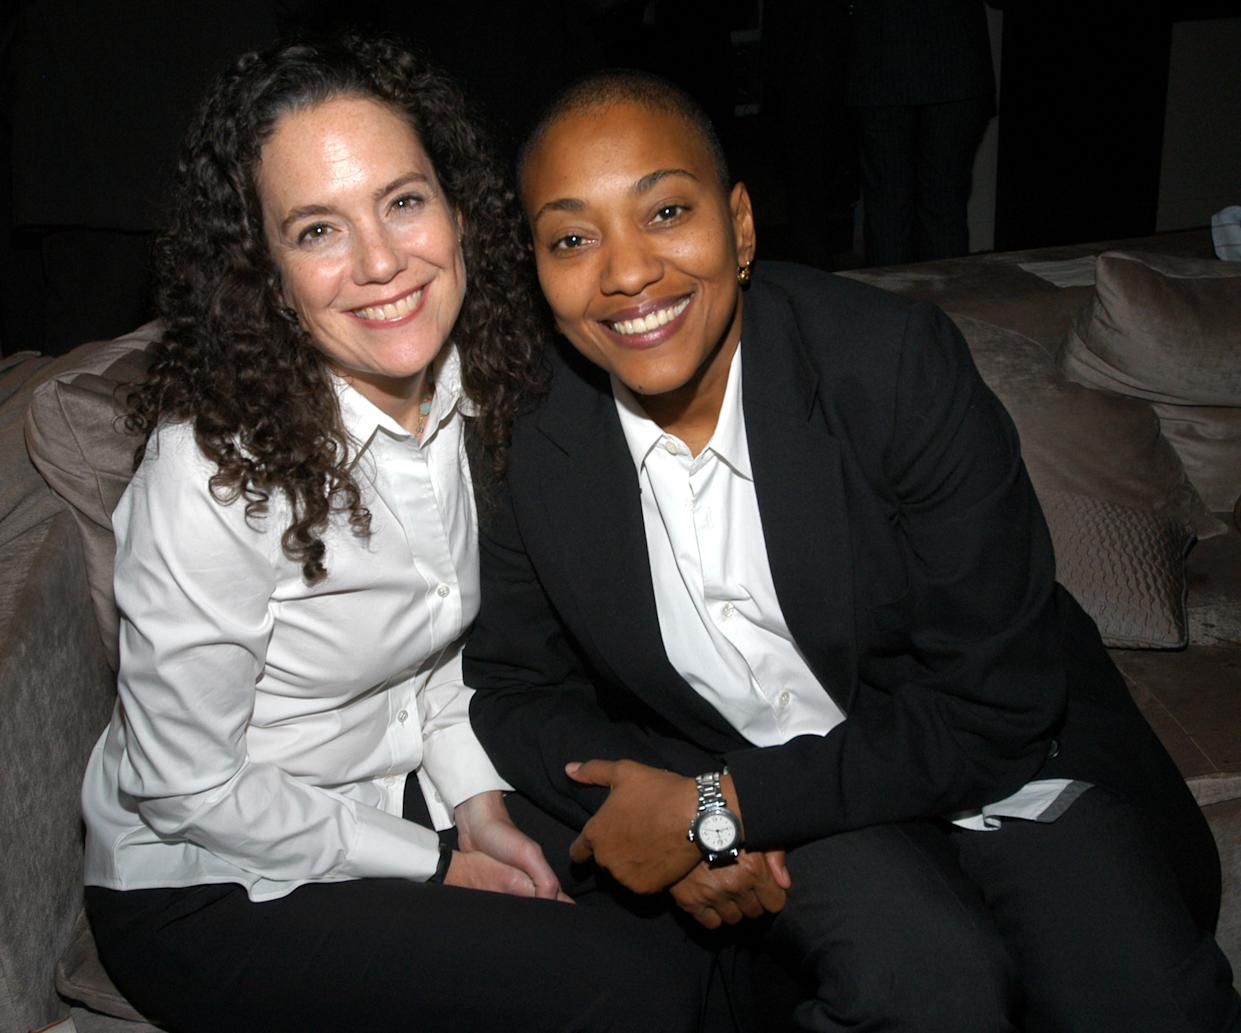 Robyn Crawford (right) and guest during Beyonce Knowles at the North American Debut of the Mercedes-Benz SLR McLaren at the Esquire Apartment 2003 - Inside at Esquire Apartment, Trump World Tower in New York City, New York, United States. (Photo by KMazur/WireImage for Esquire Magazine - USA)